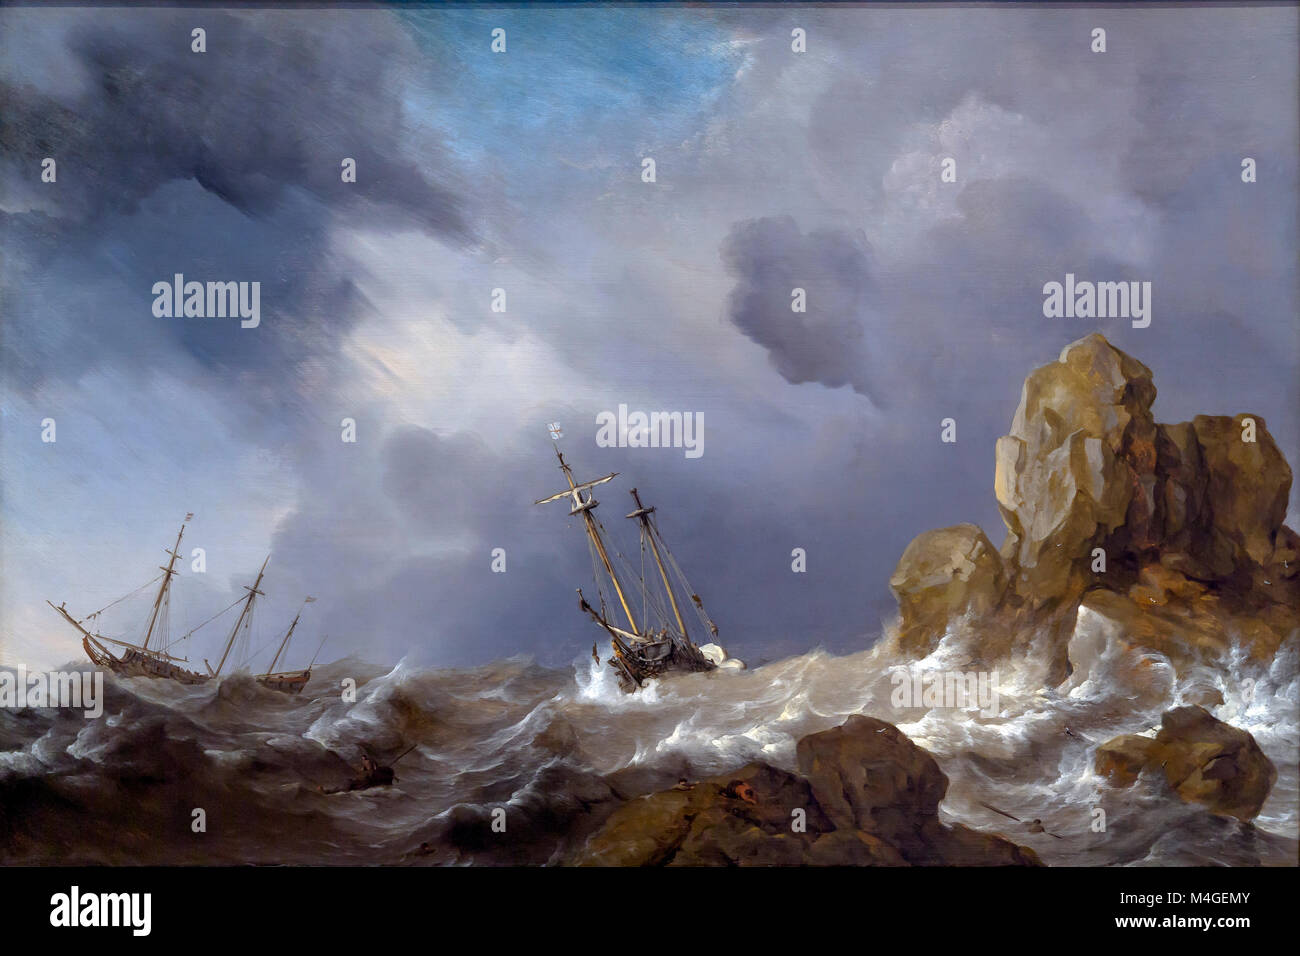 Ships in a Gale, Willem van de Velde the Younger, 1660, National Gallery of Art, Washington DC, USA, North America - Stock Image